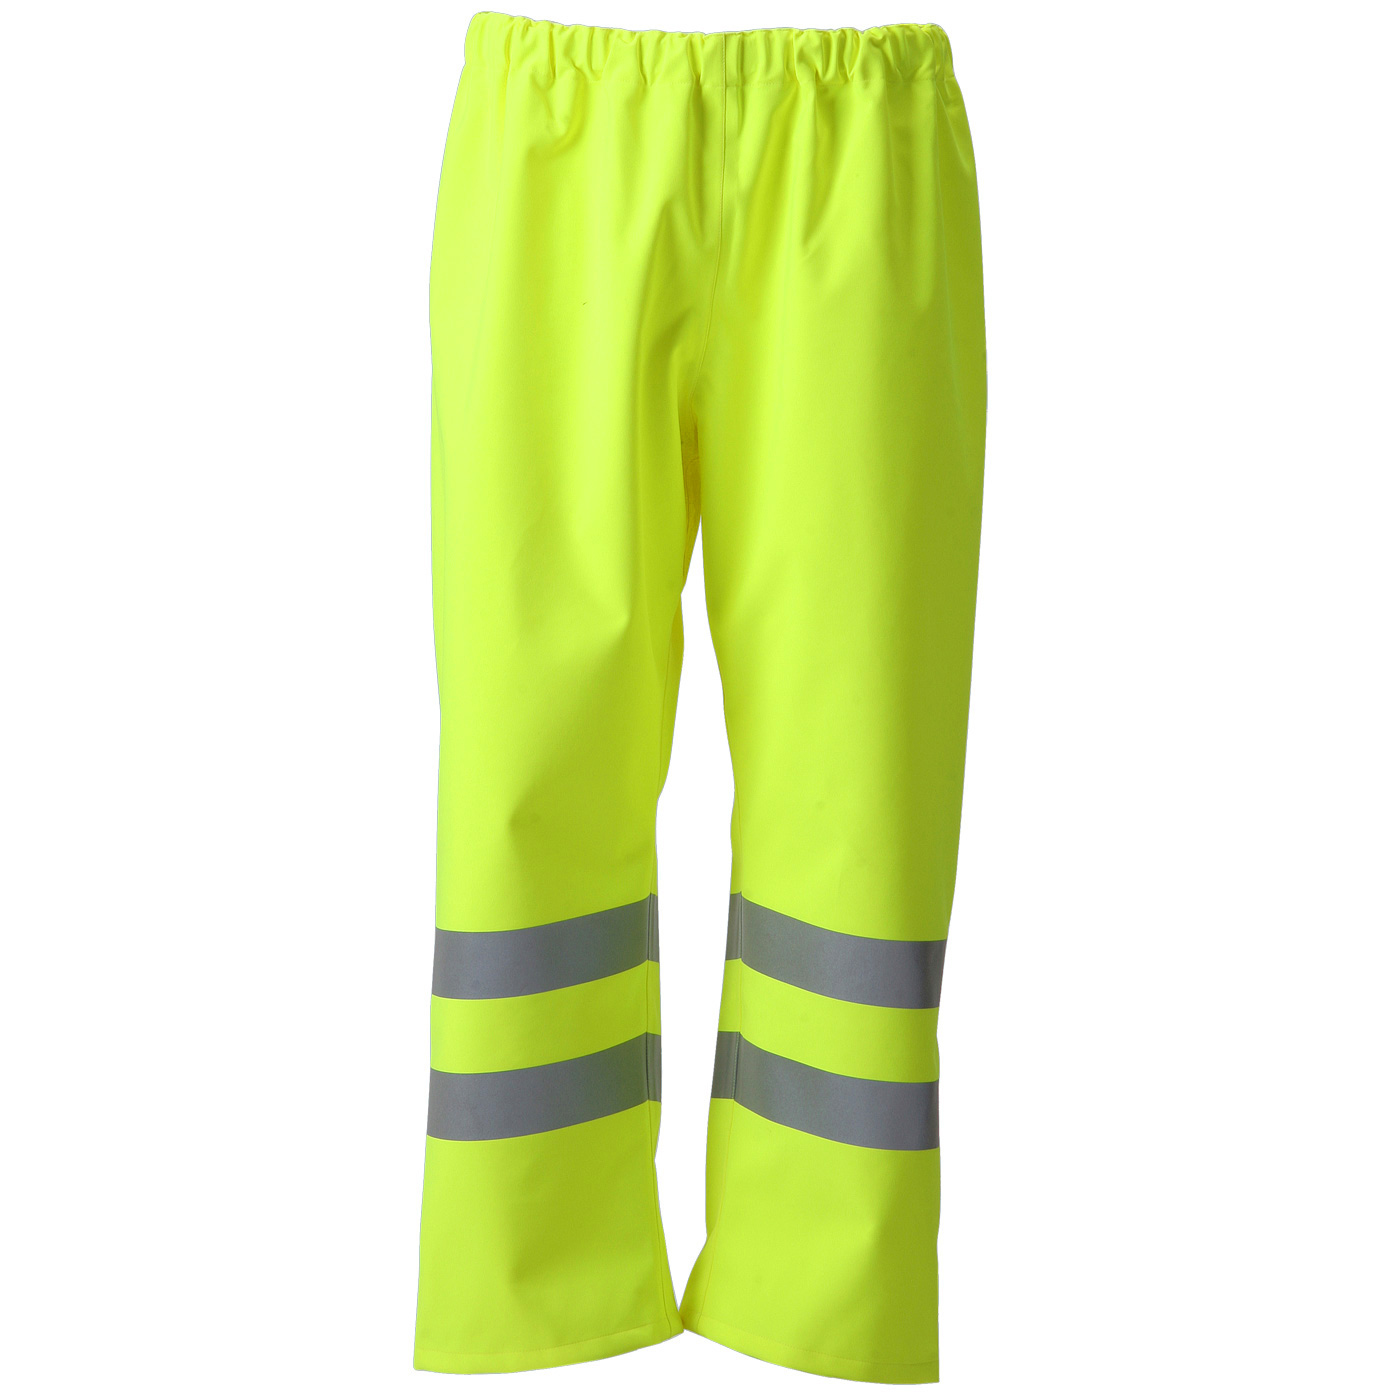 B-Seen Gore-Tex Over Trousers Foul Weather 3XL Saturn Yellow Ref GTHV160SYXXXL *Up to 3 Day Leadtime*